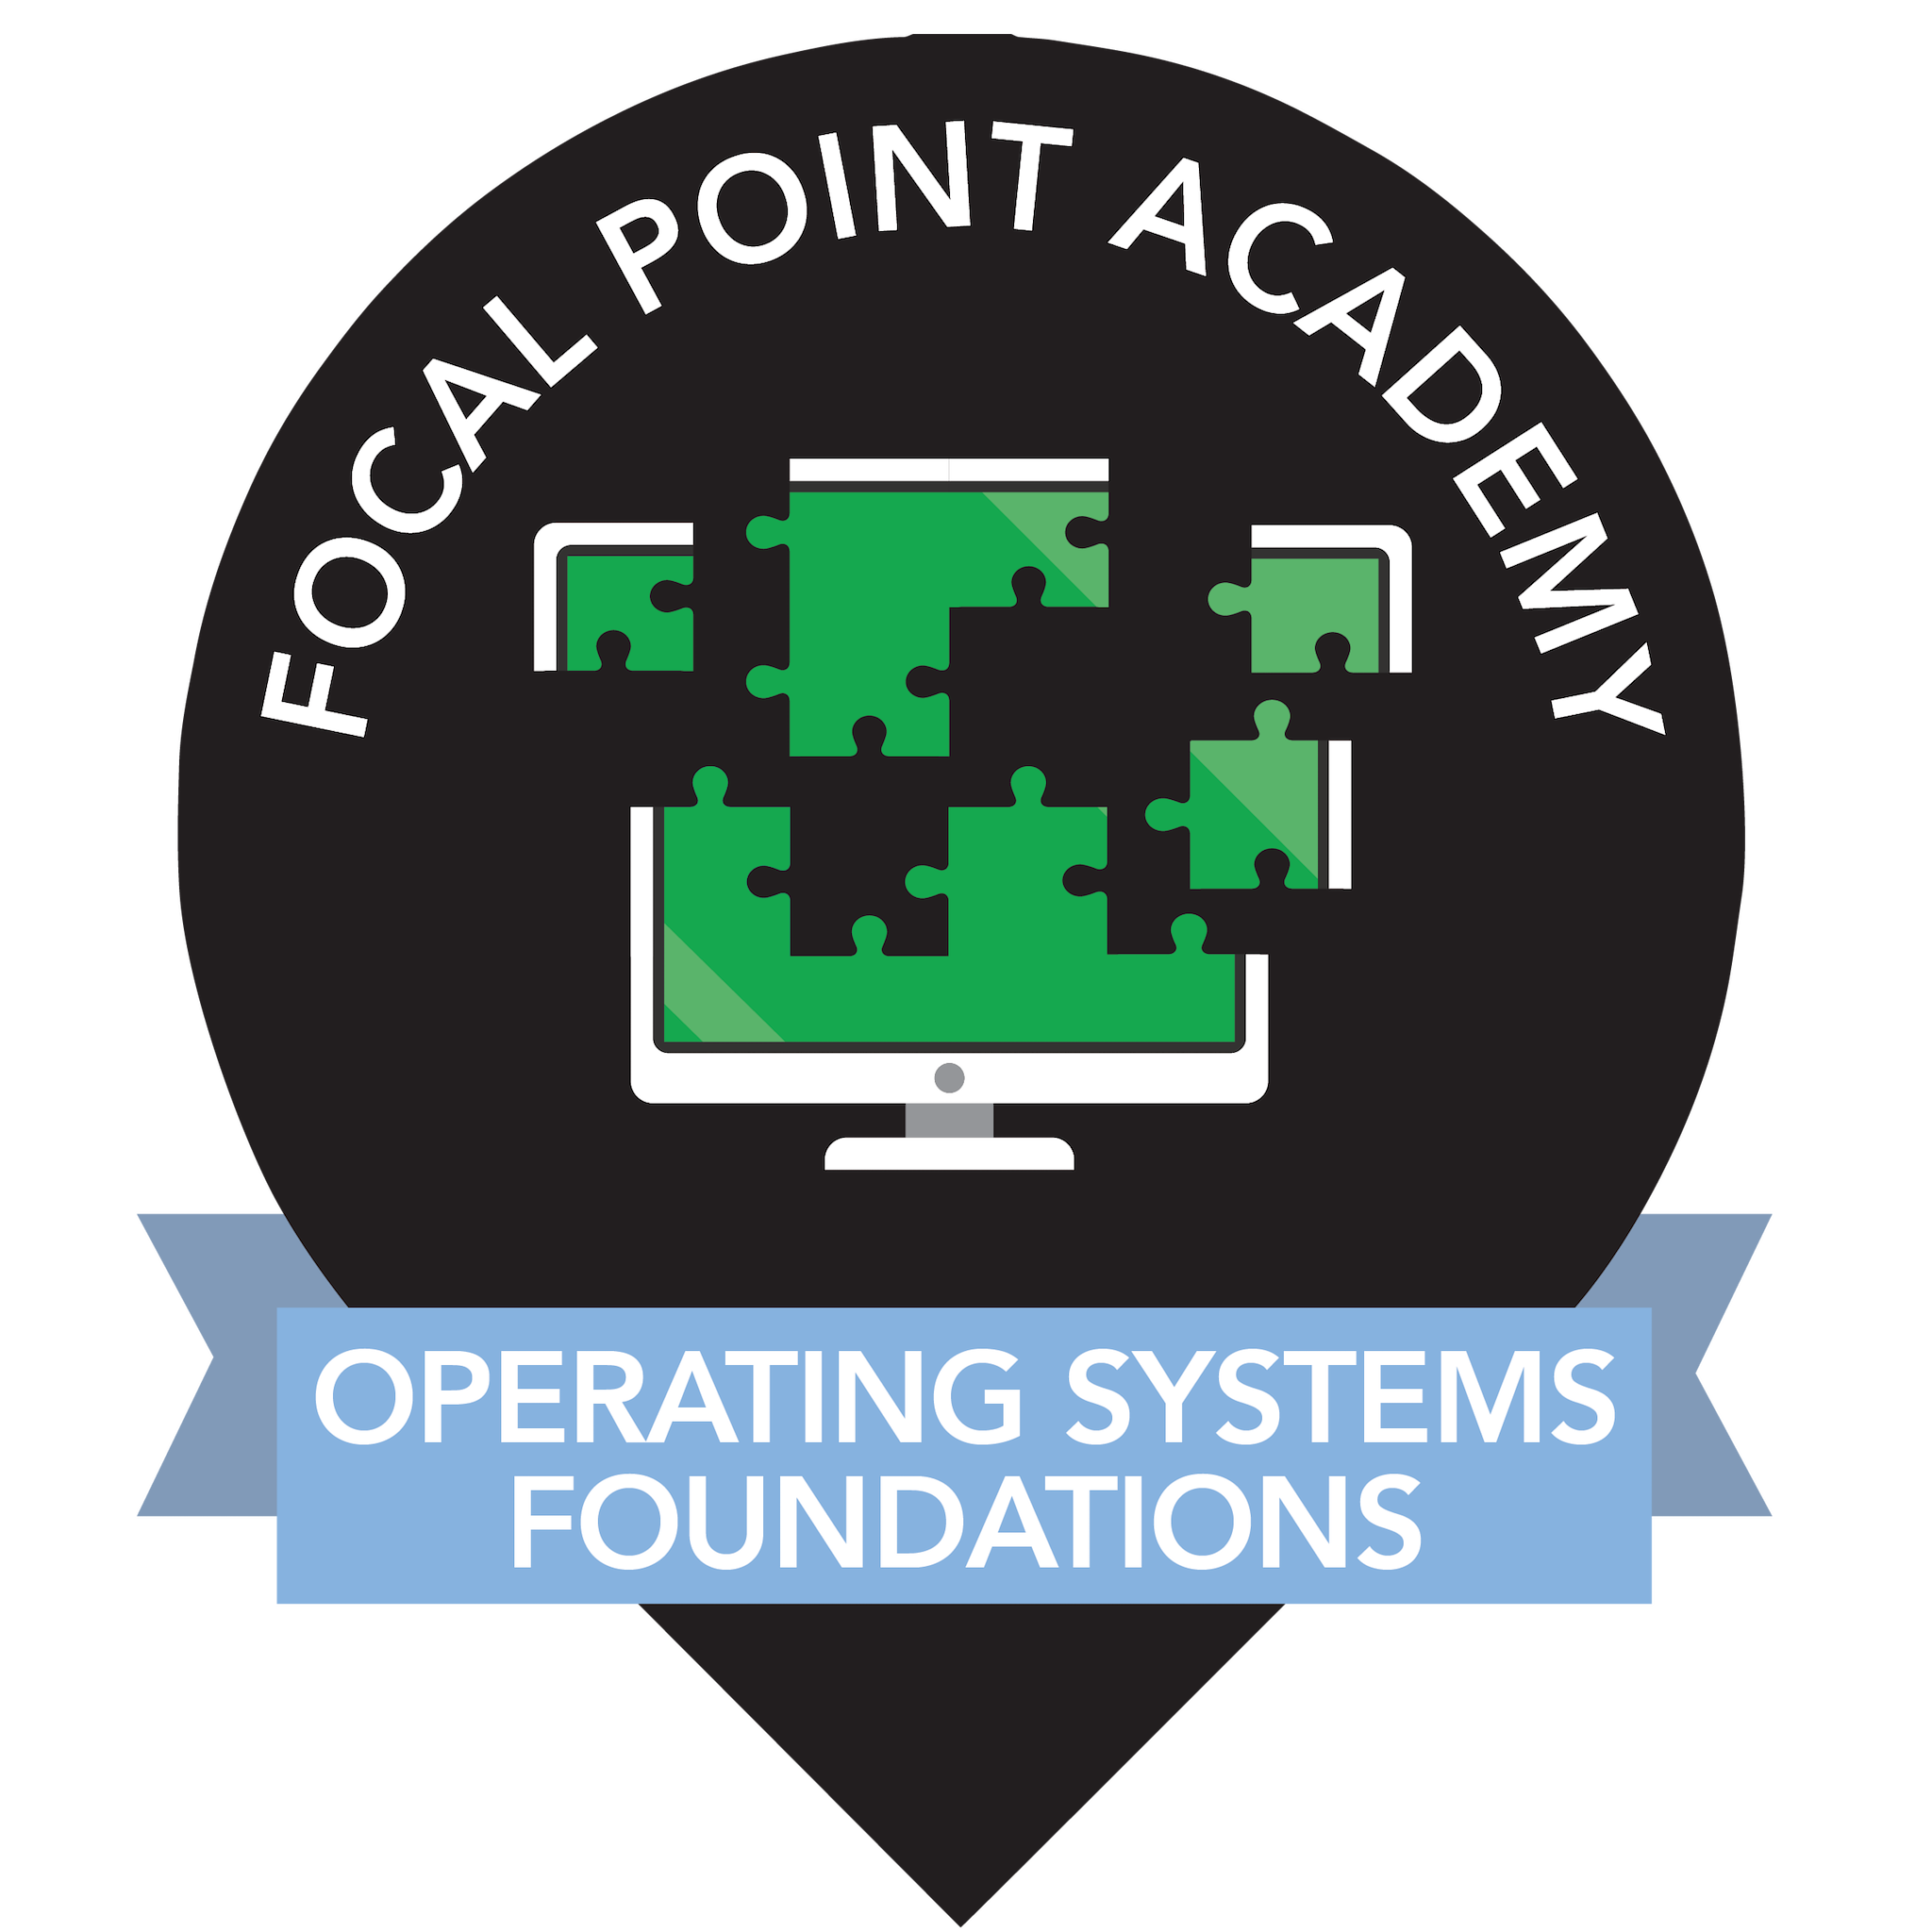 Operating System Foundations